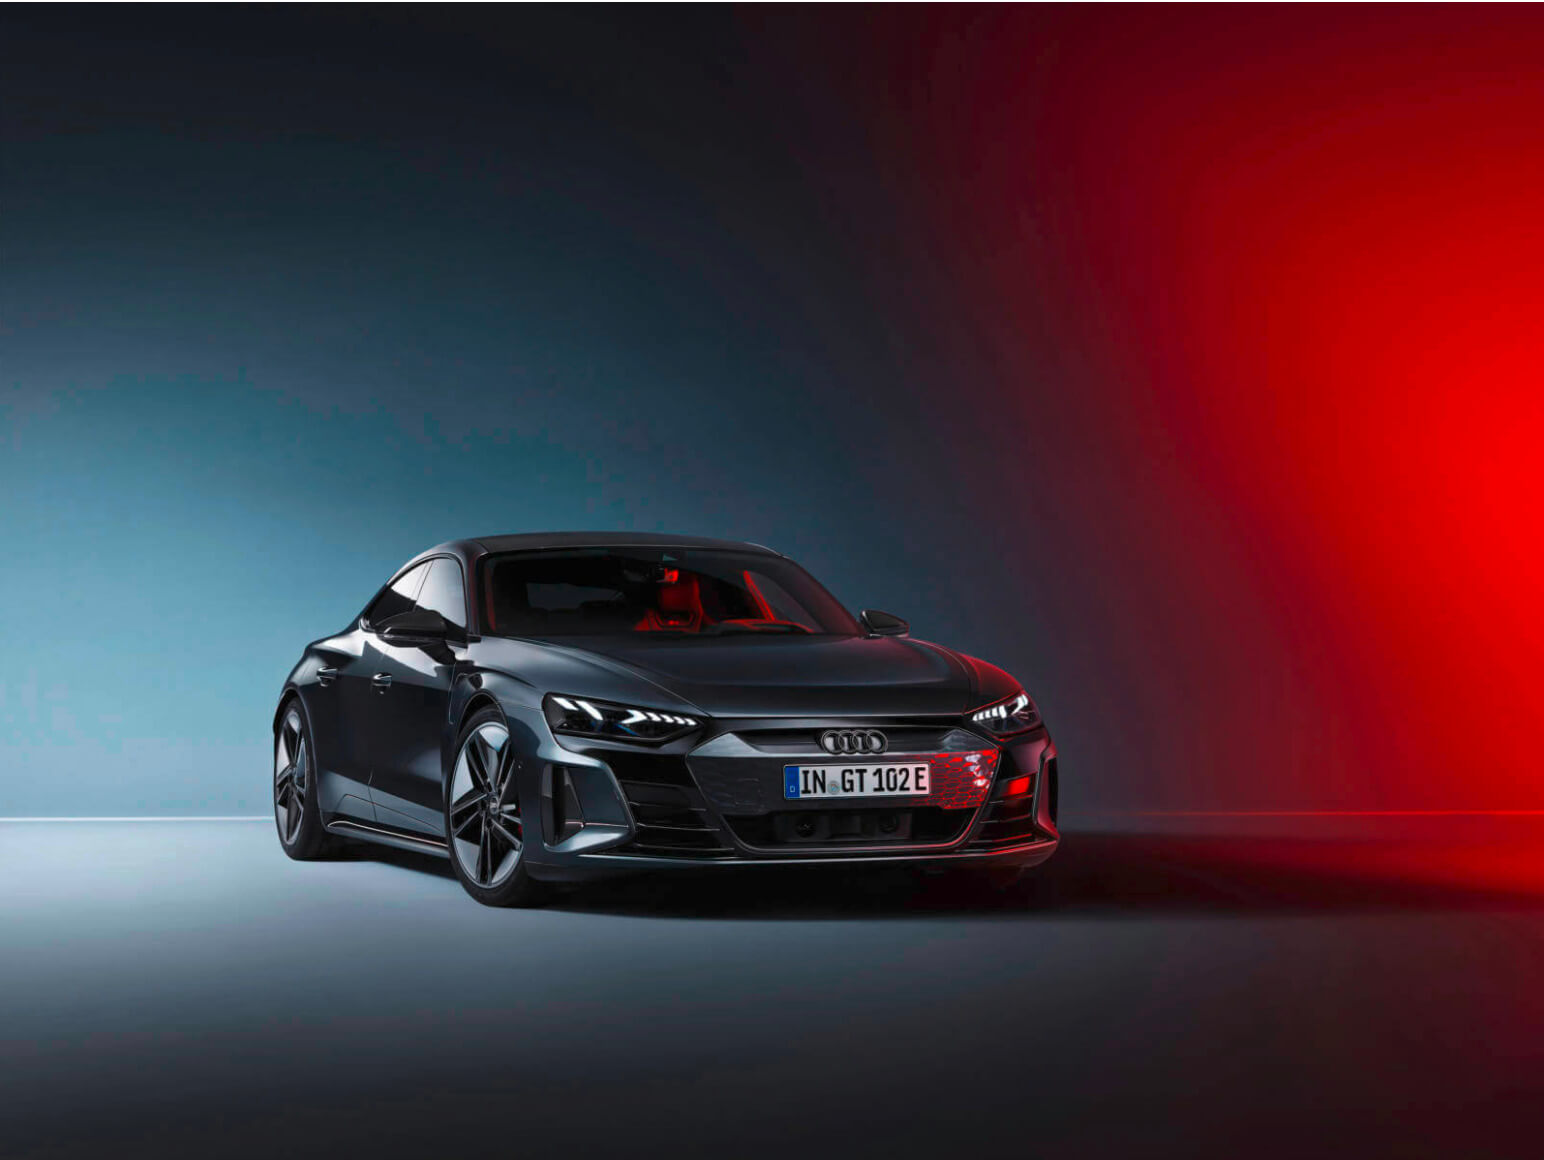 WE ARE DELIGHTED TO WELCOME AUDI AS A NEW LUXURIA LIFESTYLE GOLD ADVERTISING PARTNER